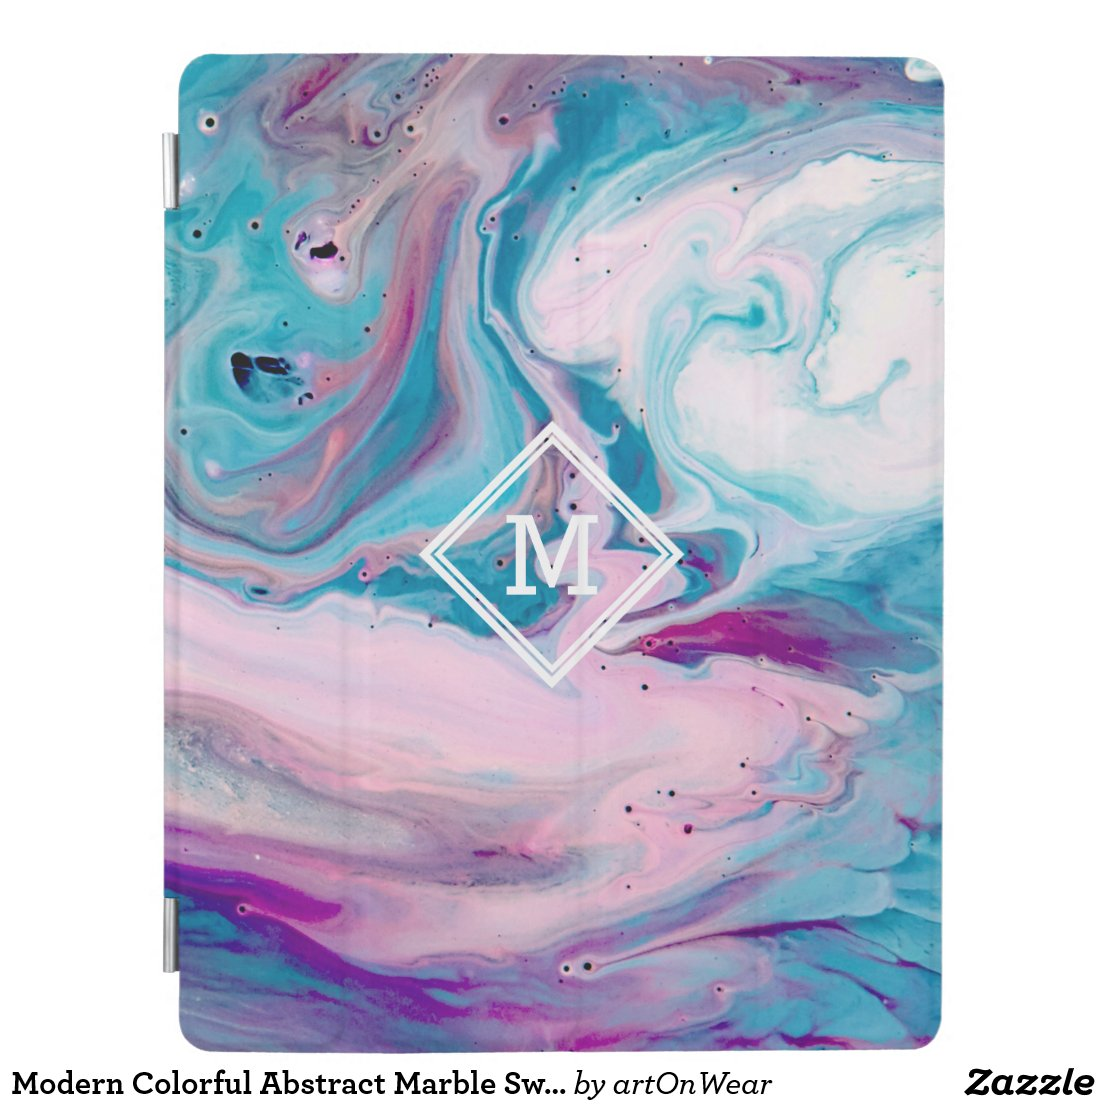 Modern Colorful Abstract Marble Swirls GR3